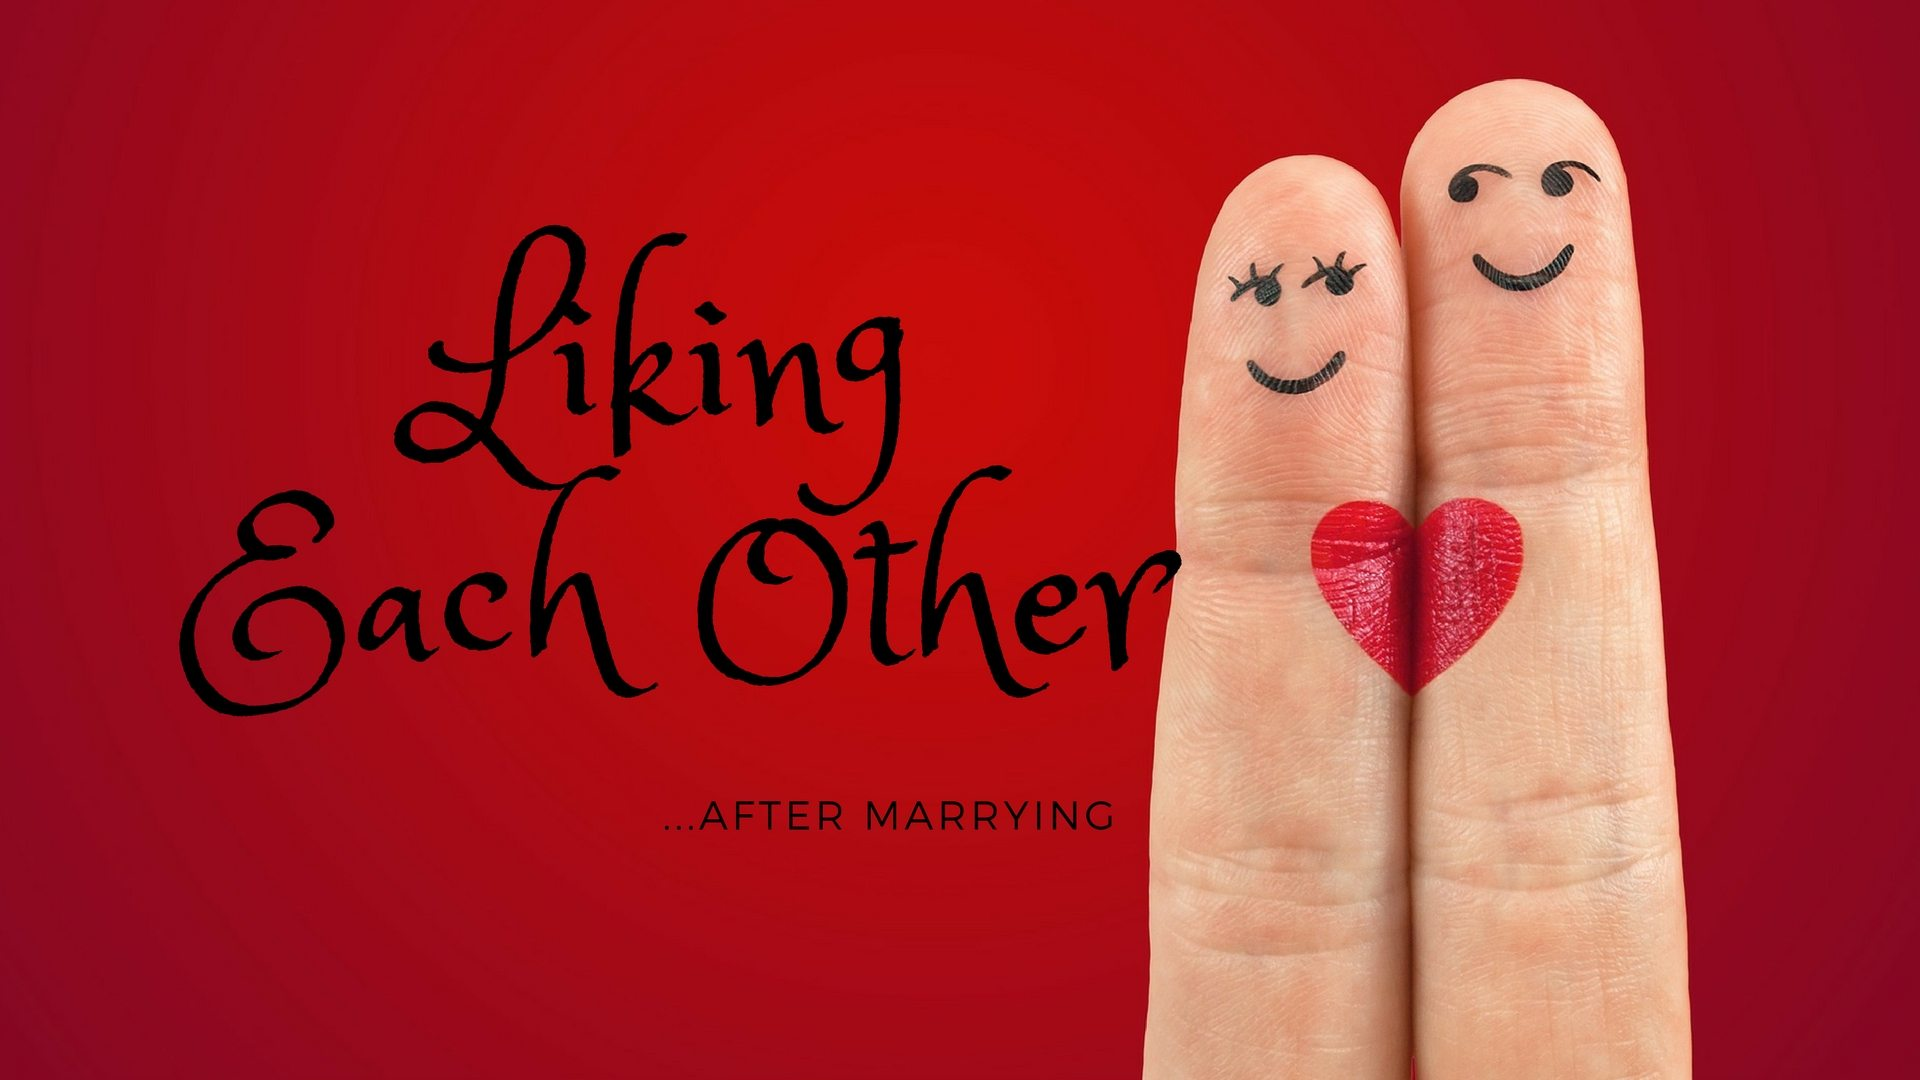 Liking Each Other Pixabay - Canva